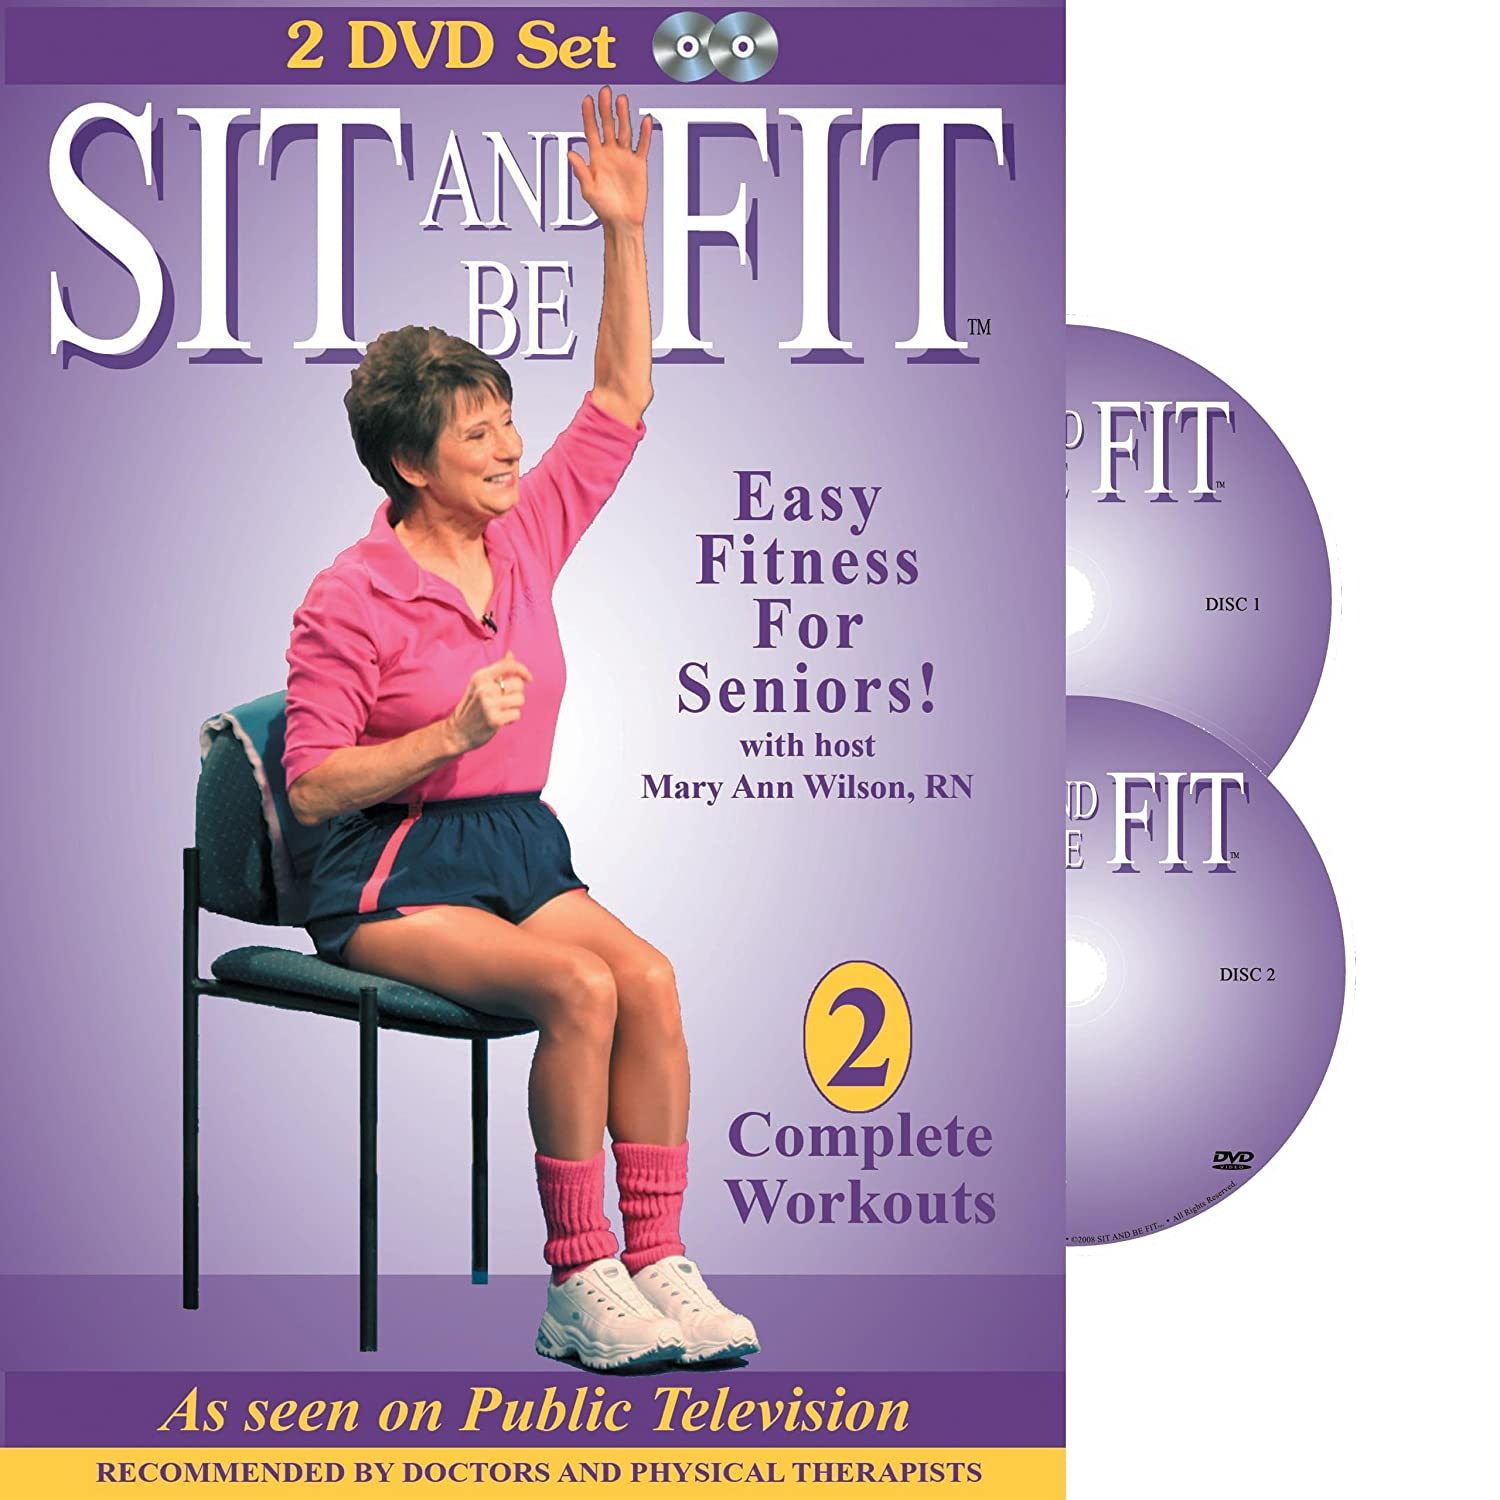 Chair exercises for seniors - Amazon Com Sit And Be Fit Easy Fitness For Seniors Complete Workouts Mary Ann Wilson Movies Tv